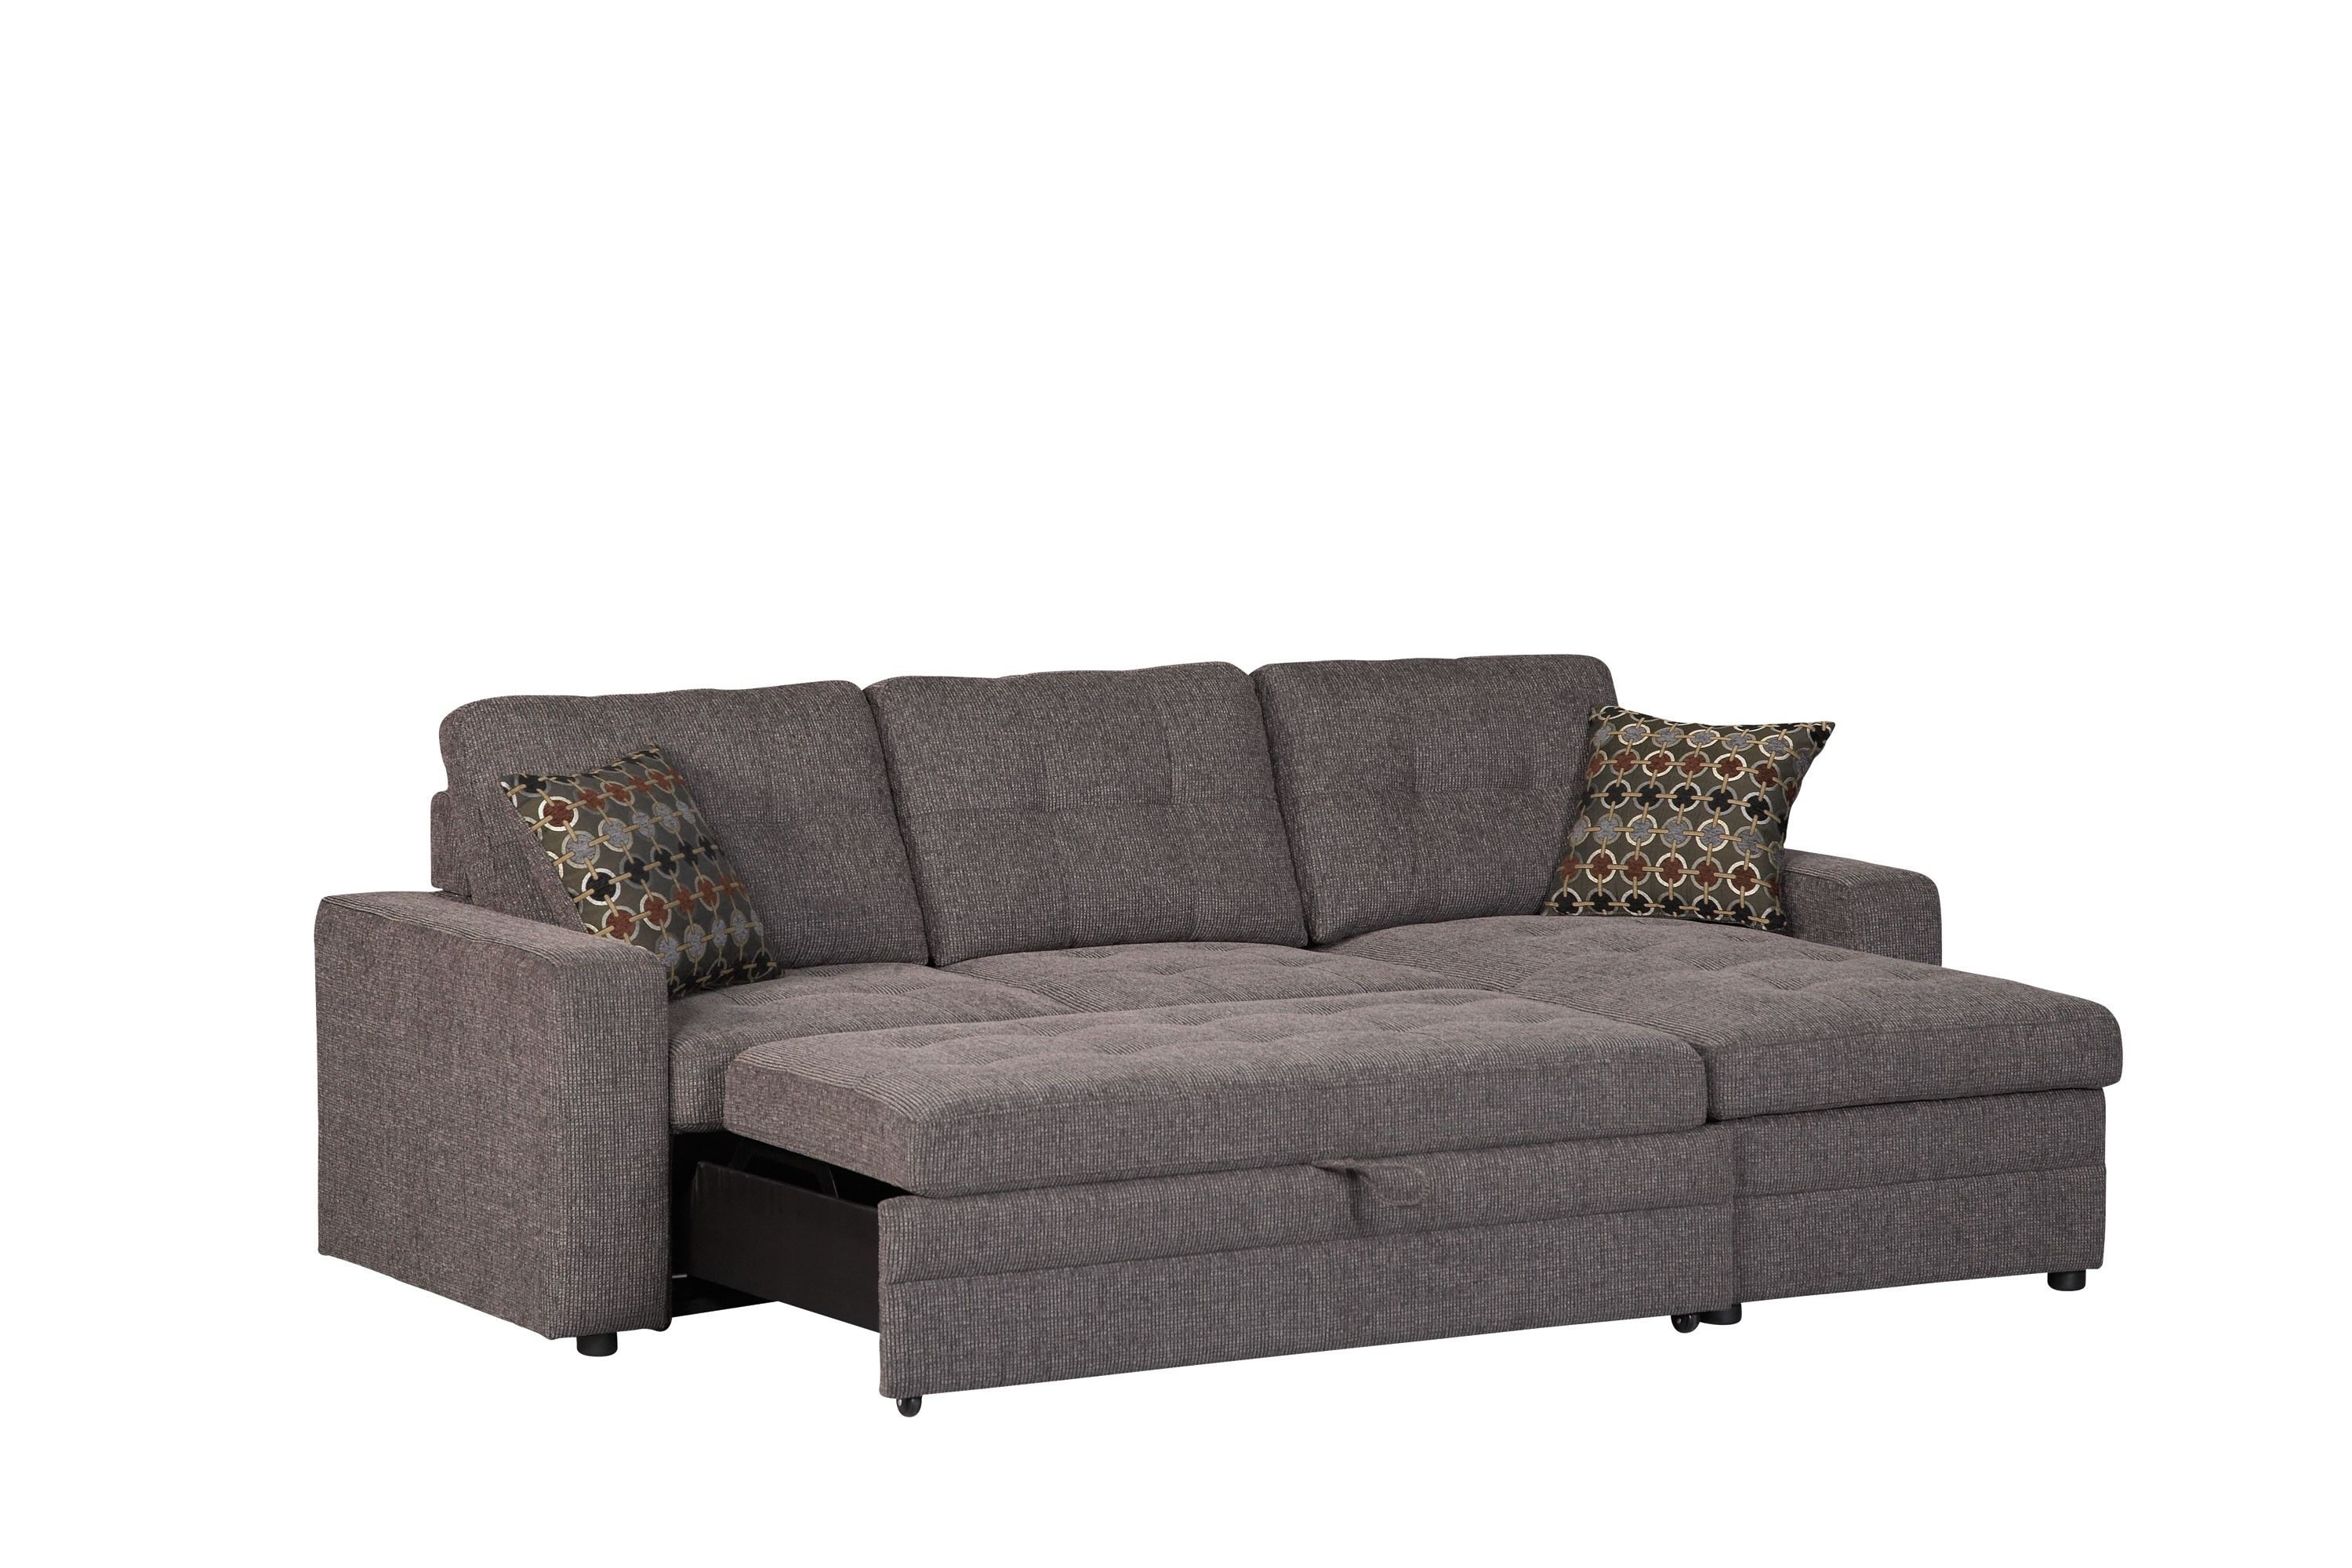 Couches Sleeper Small Sofa Bed Sectional